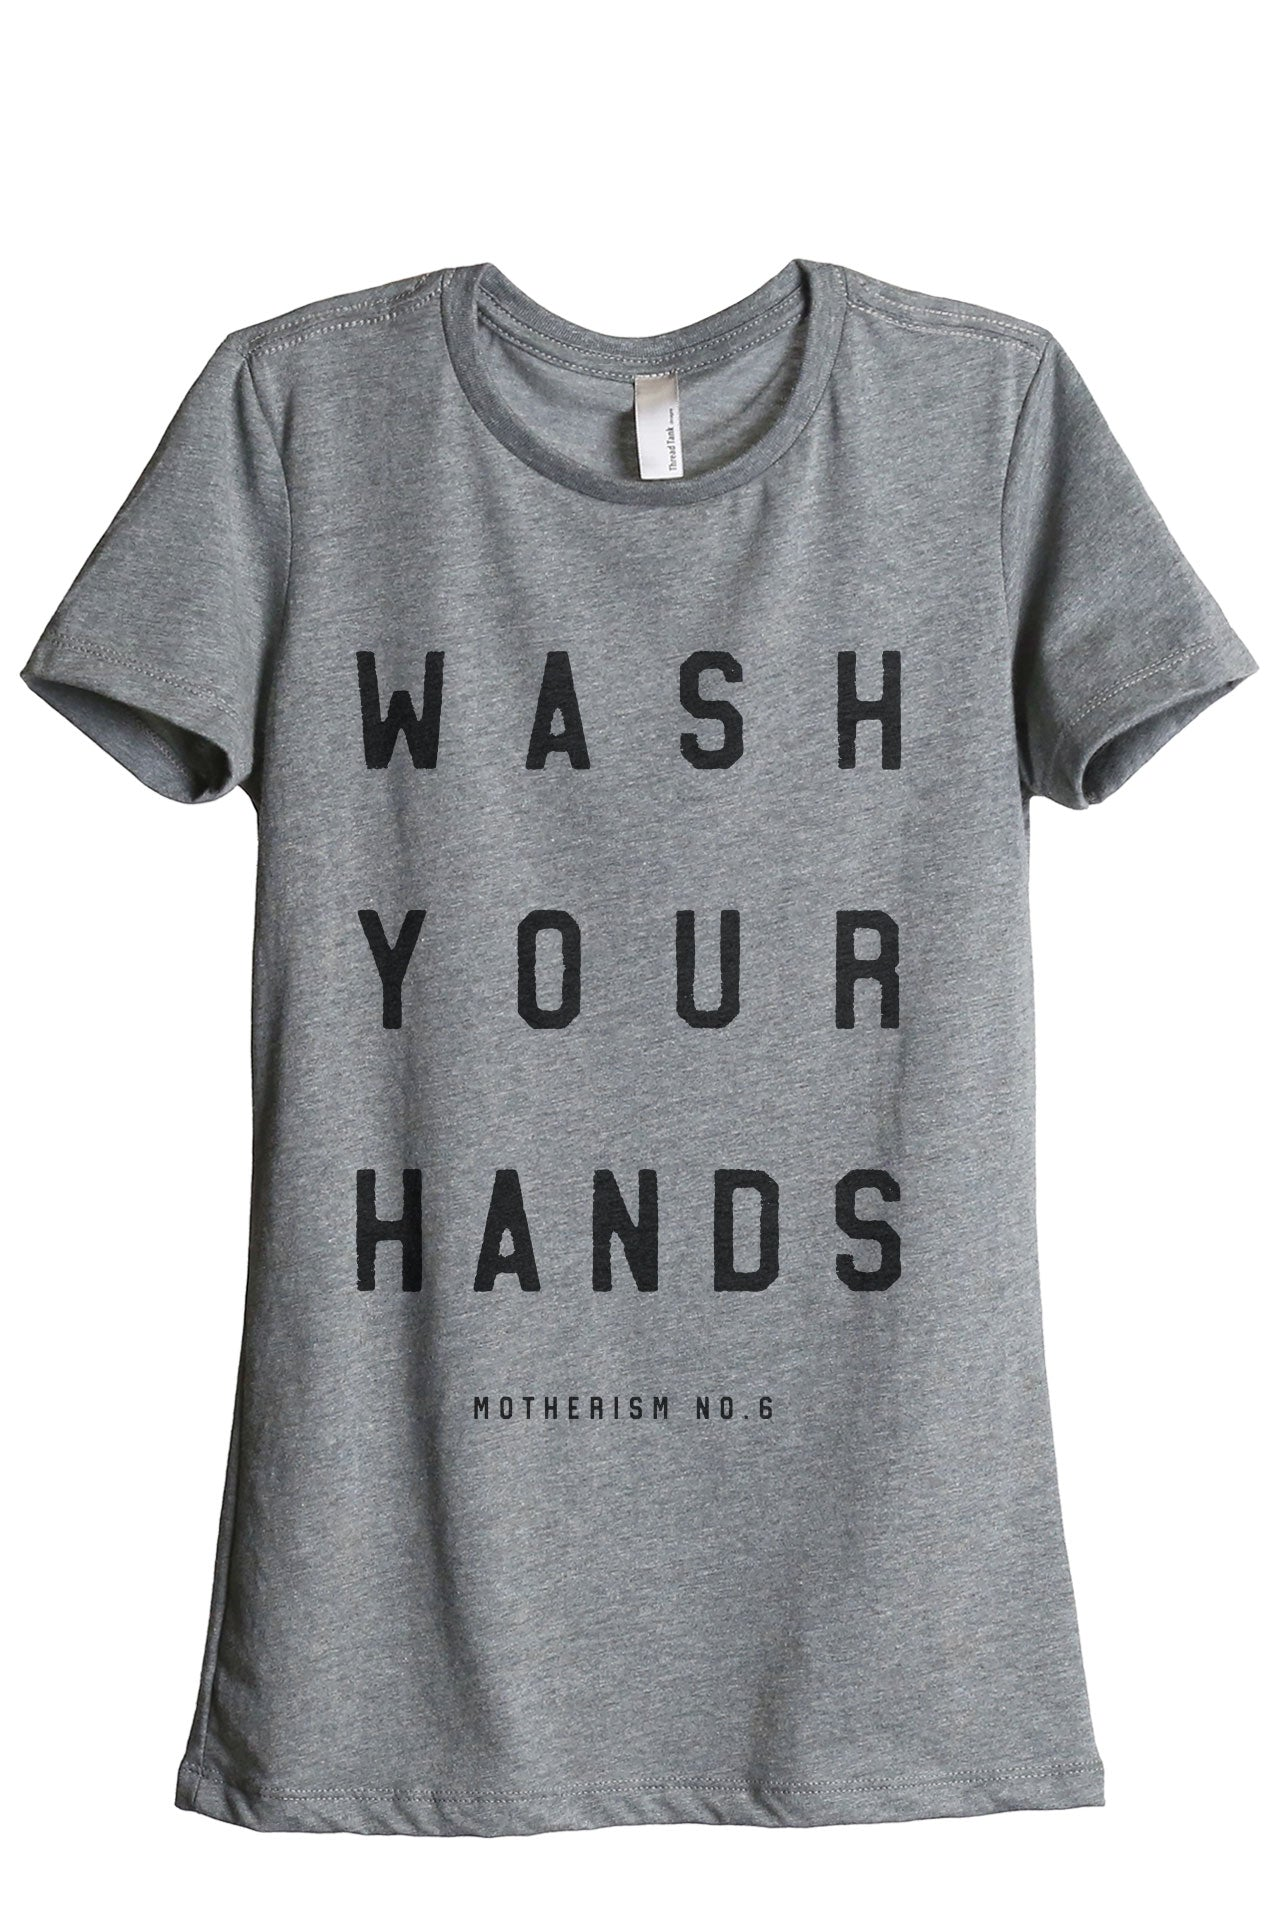 Wash Your Hands Motherism Women's Relaxed Crewneck T-Shirt Top Tee Heather Grey